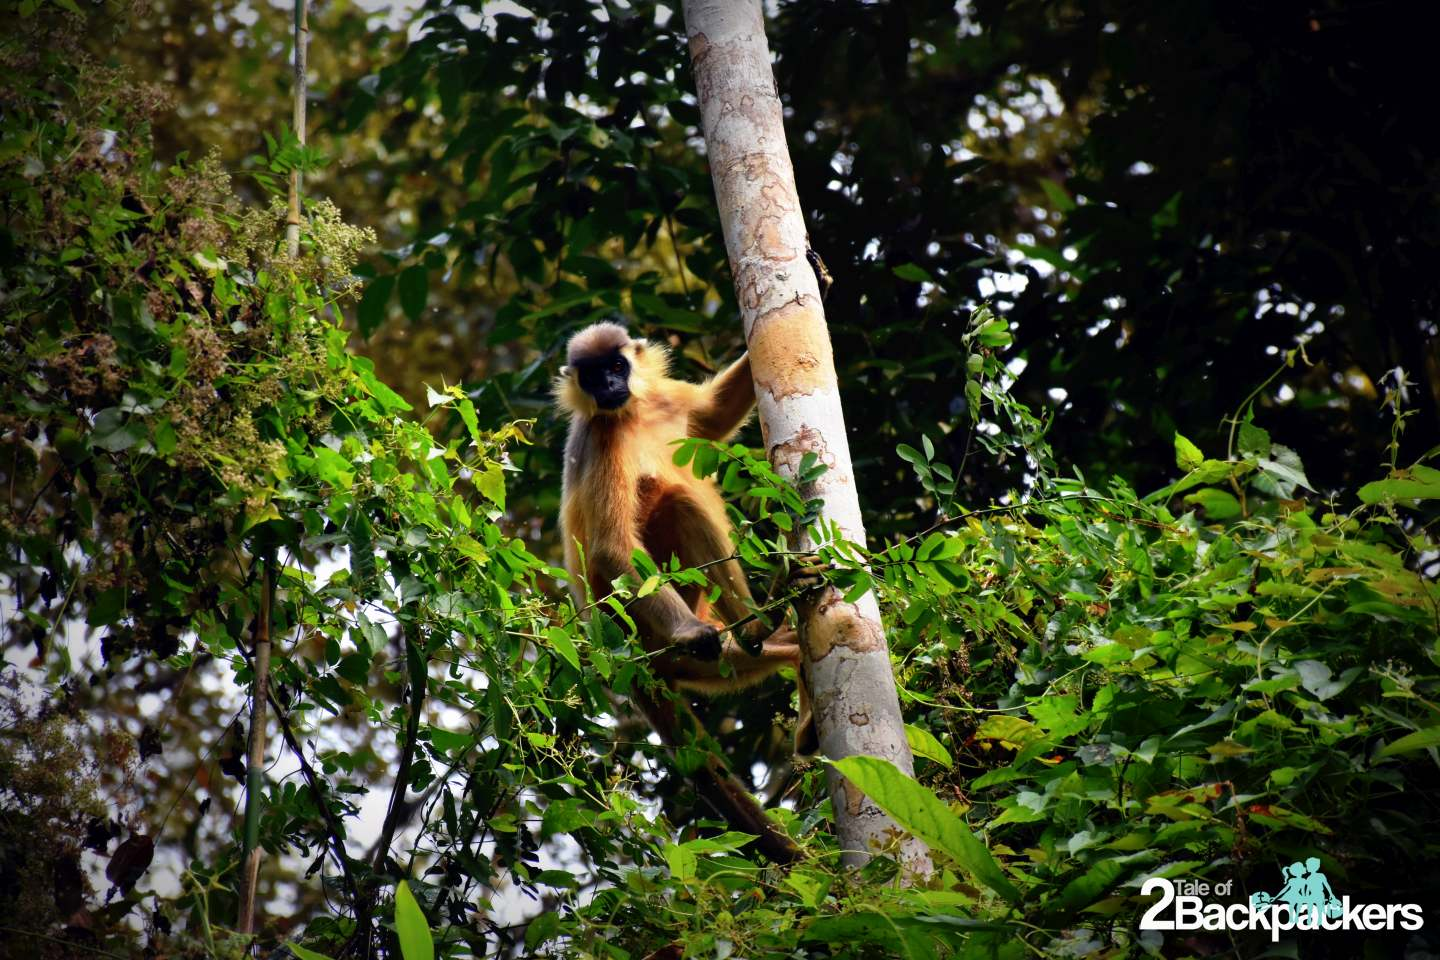 hoollongapar gibbon sanctuary Jorhat Assam Wildlife at Assam